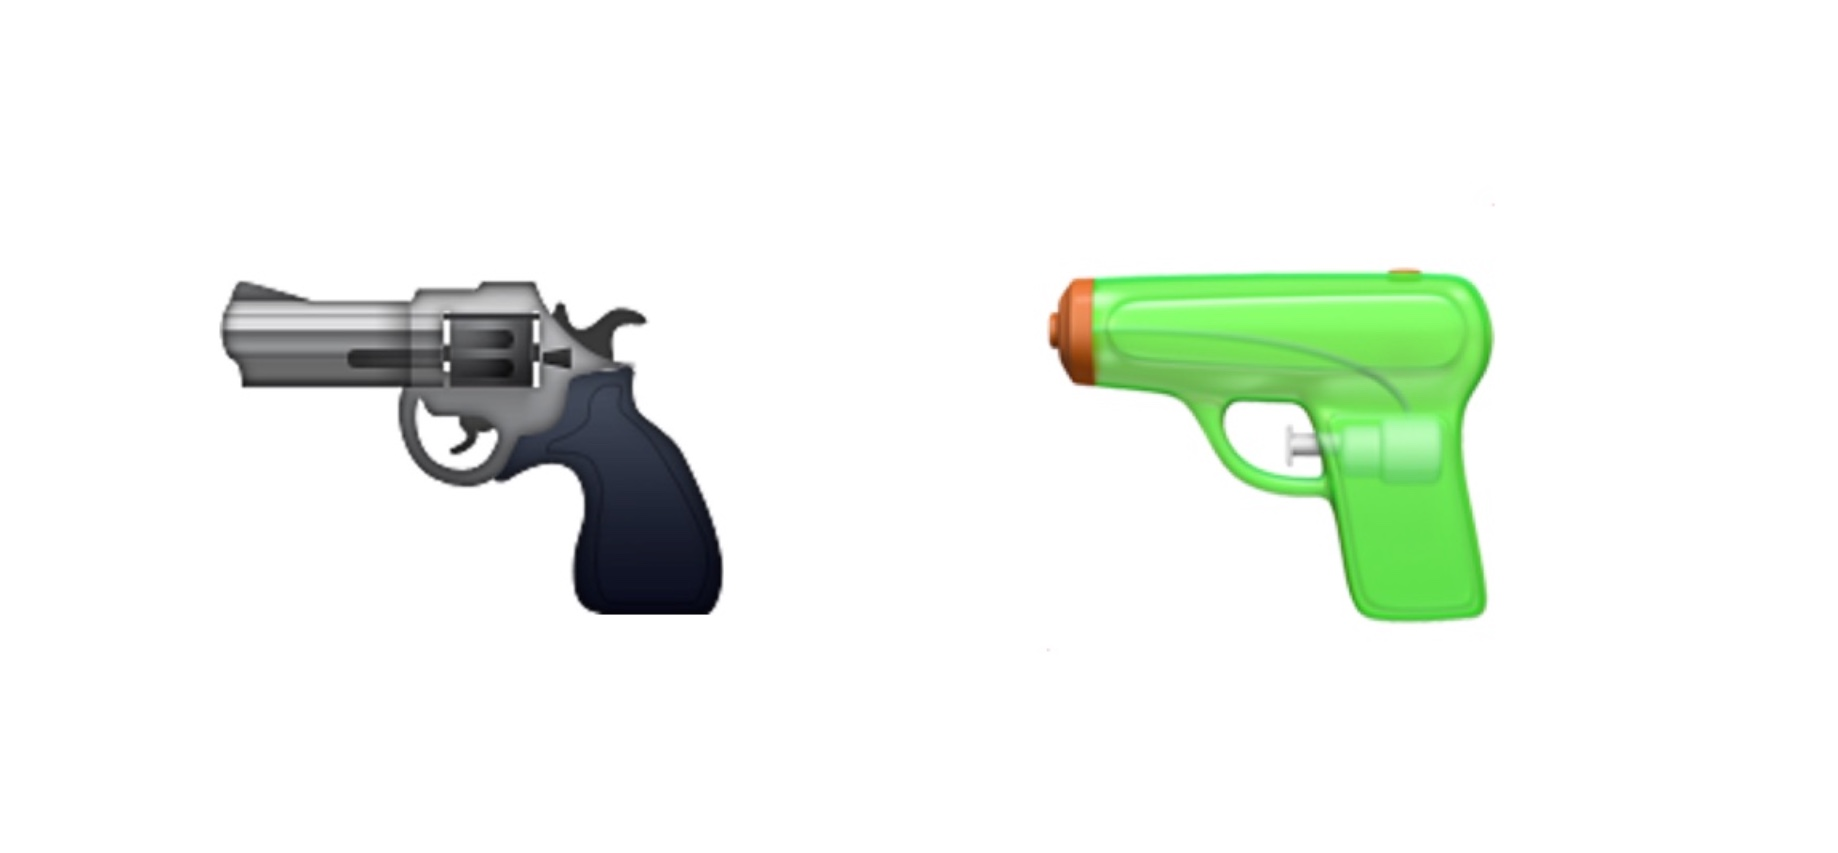 apple-gun-water-pistol-emoji-emojipedia